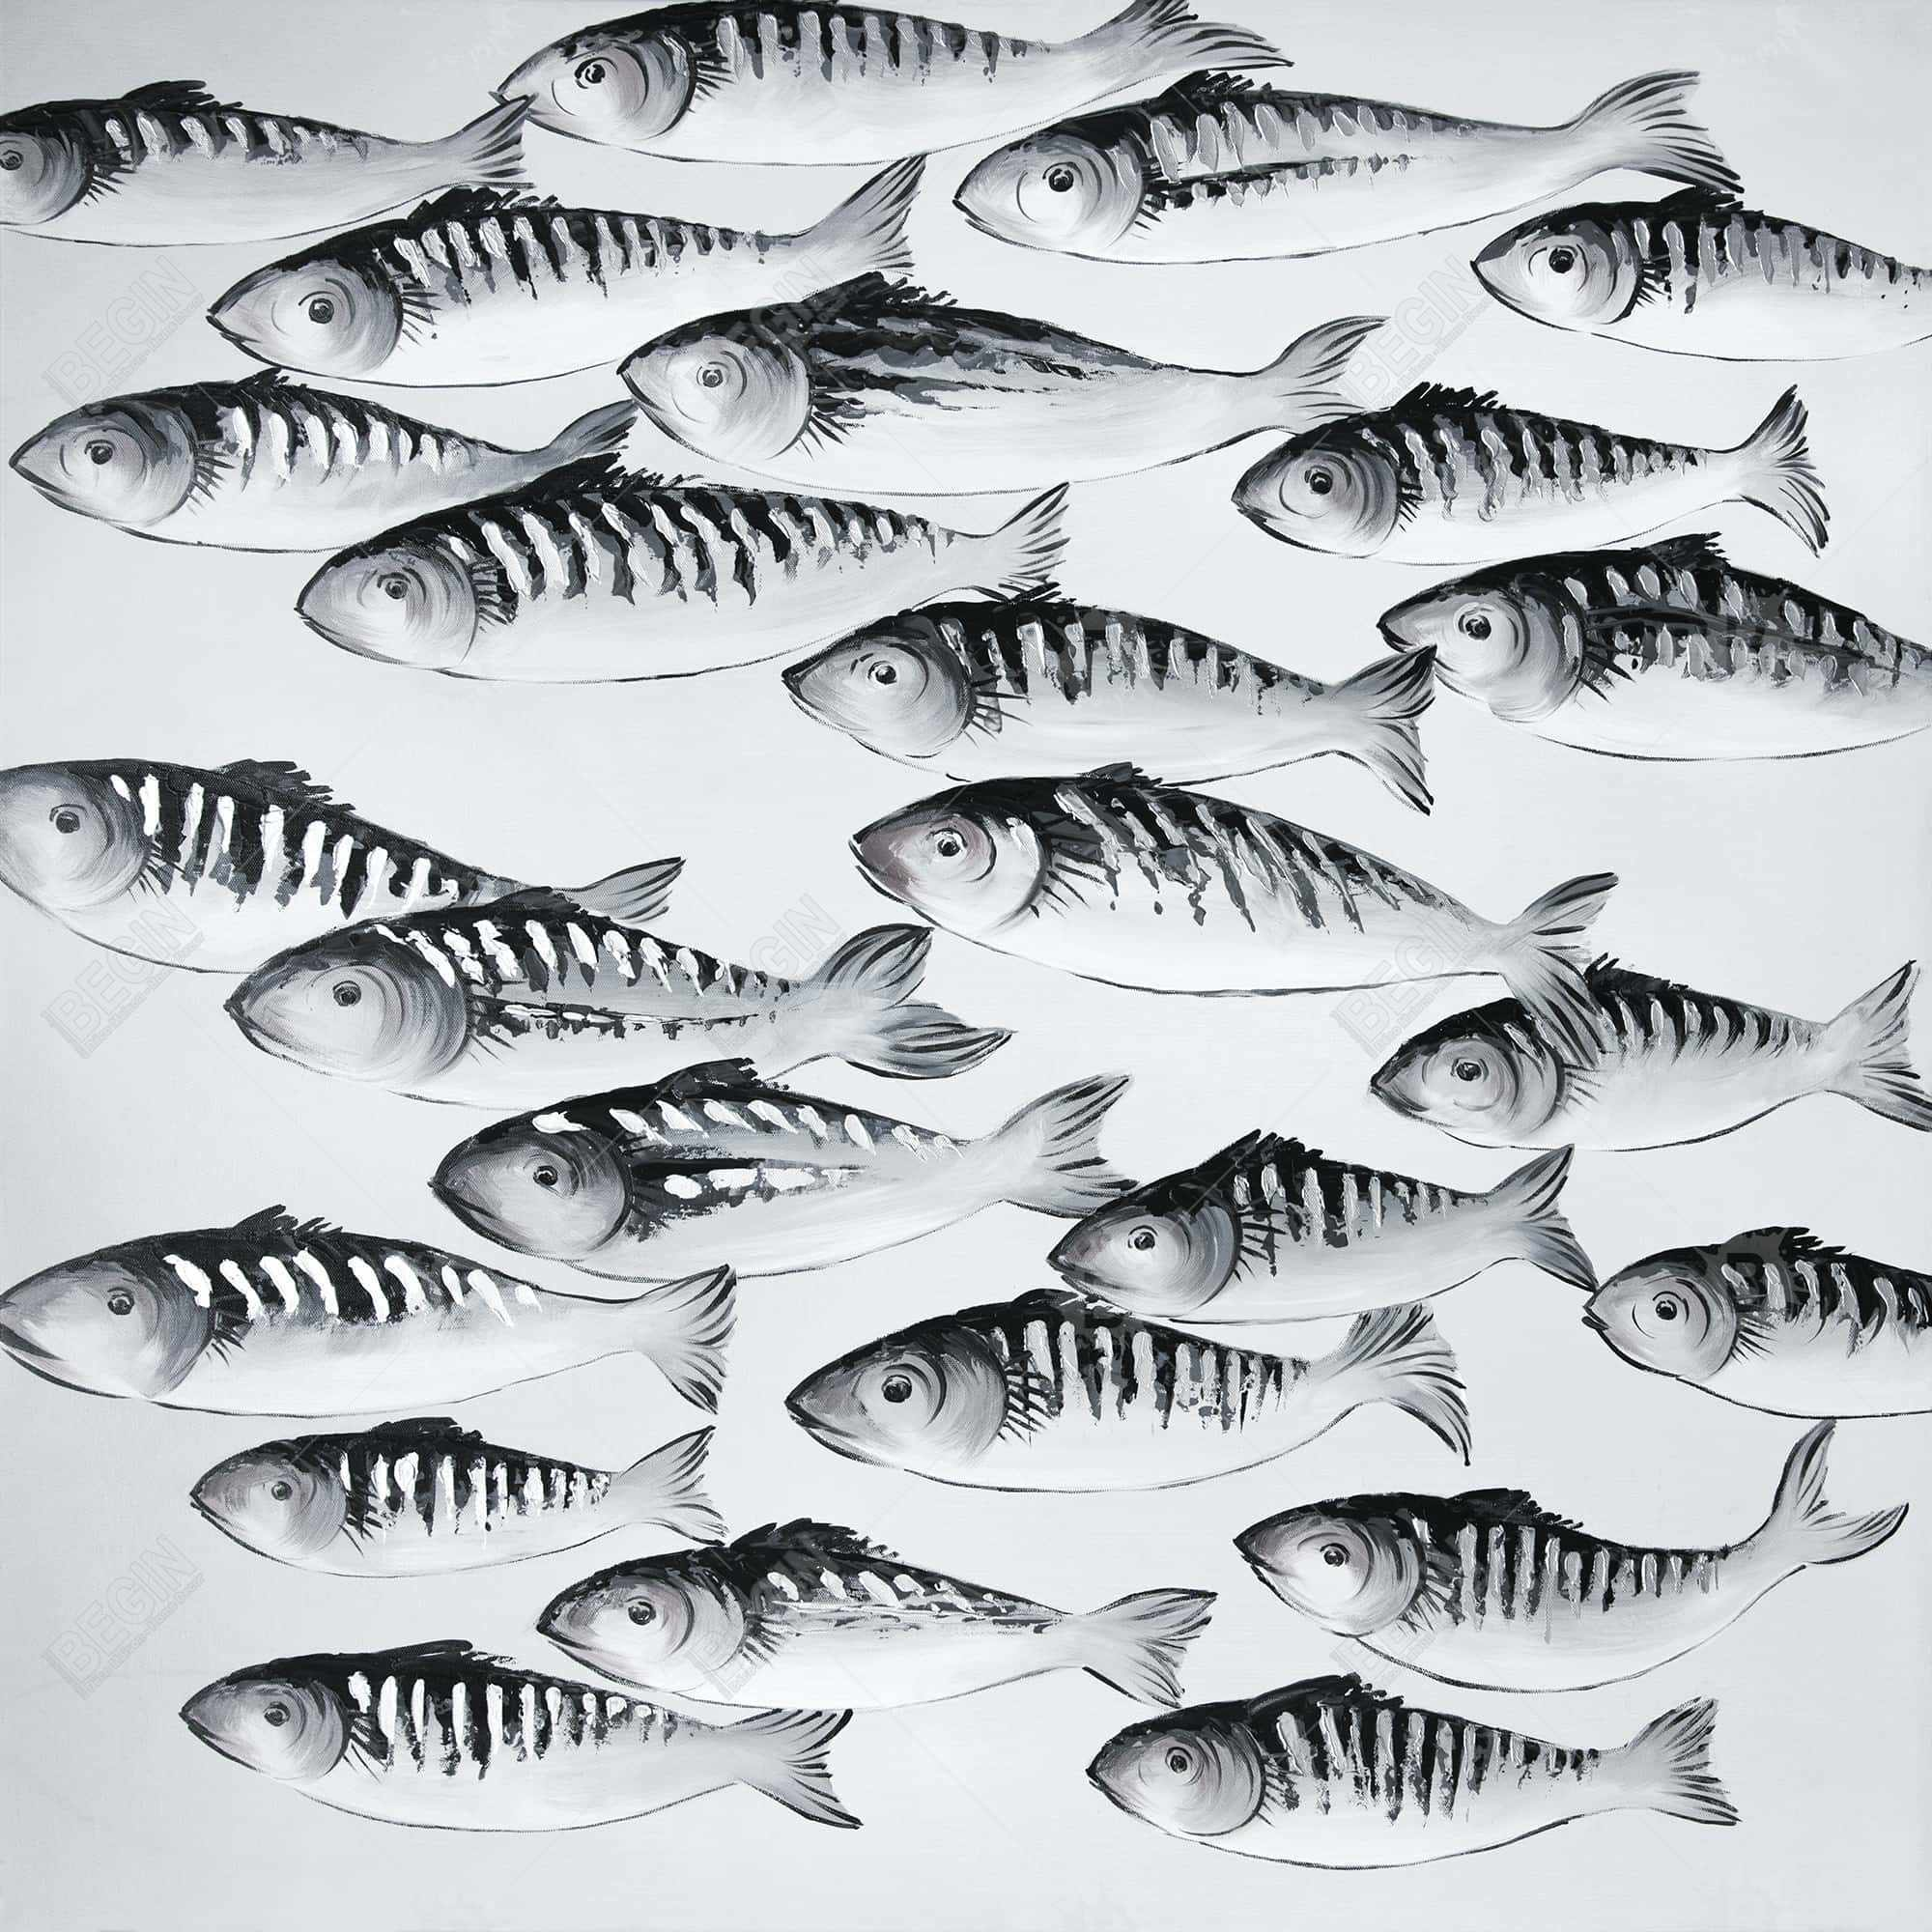 Gray school of fish